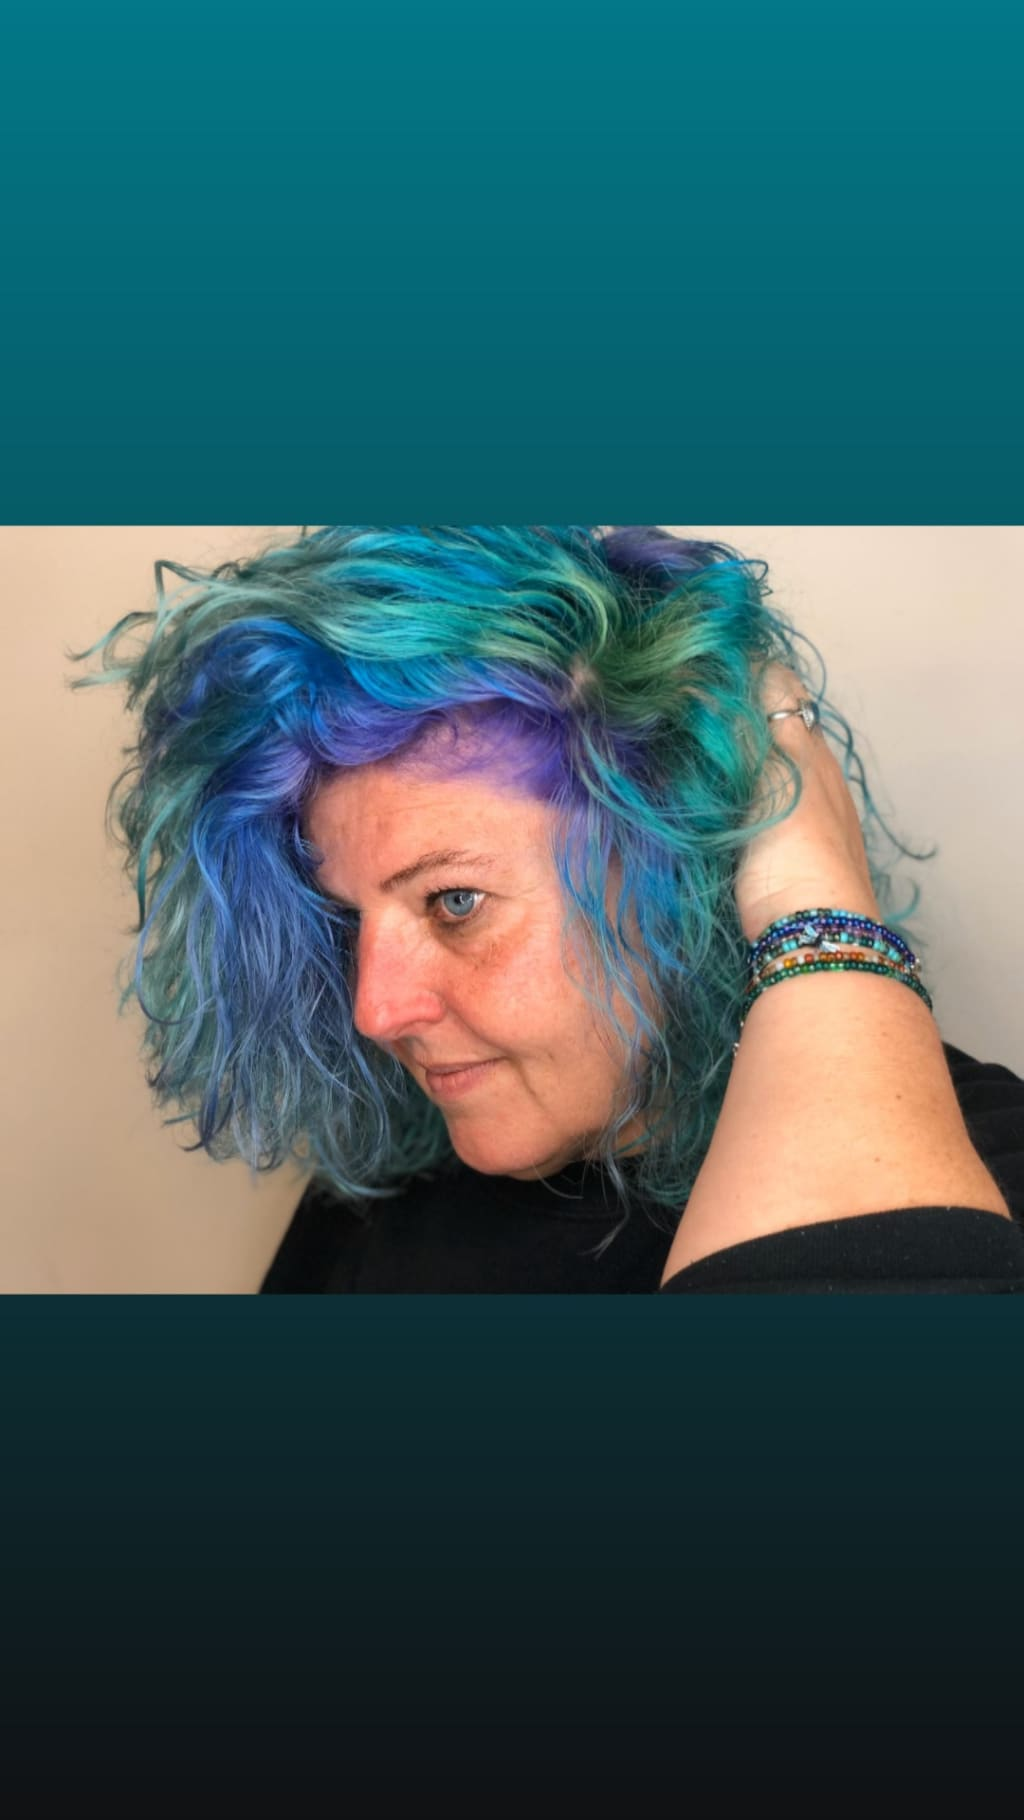 Blue hair, I don't care